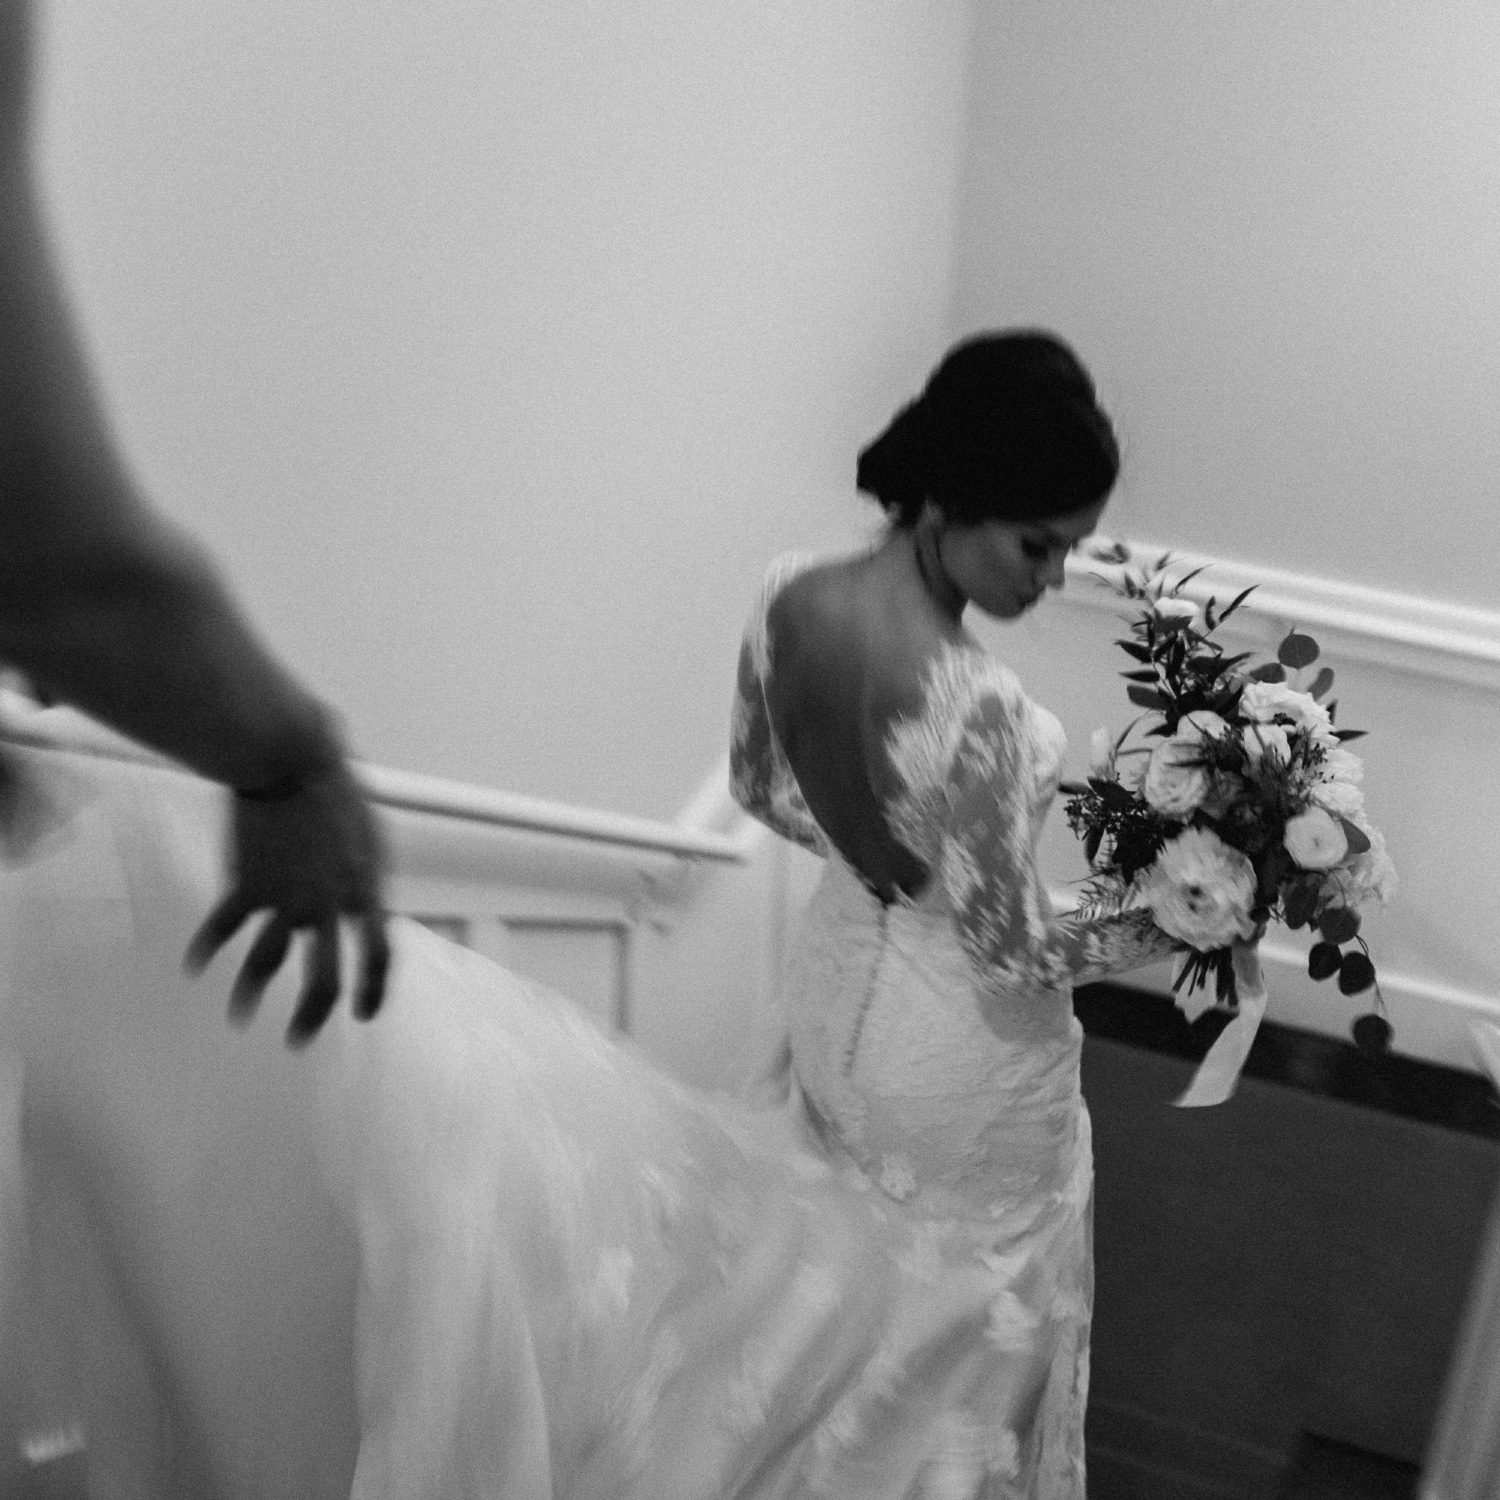 Bride walking down stairs to ceremony fuji x100t camera review